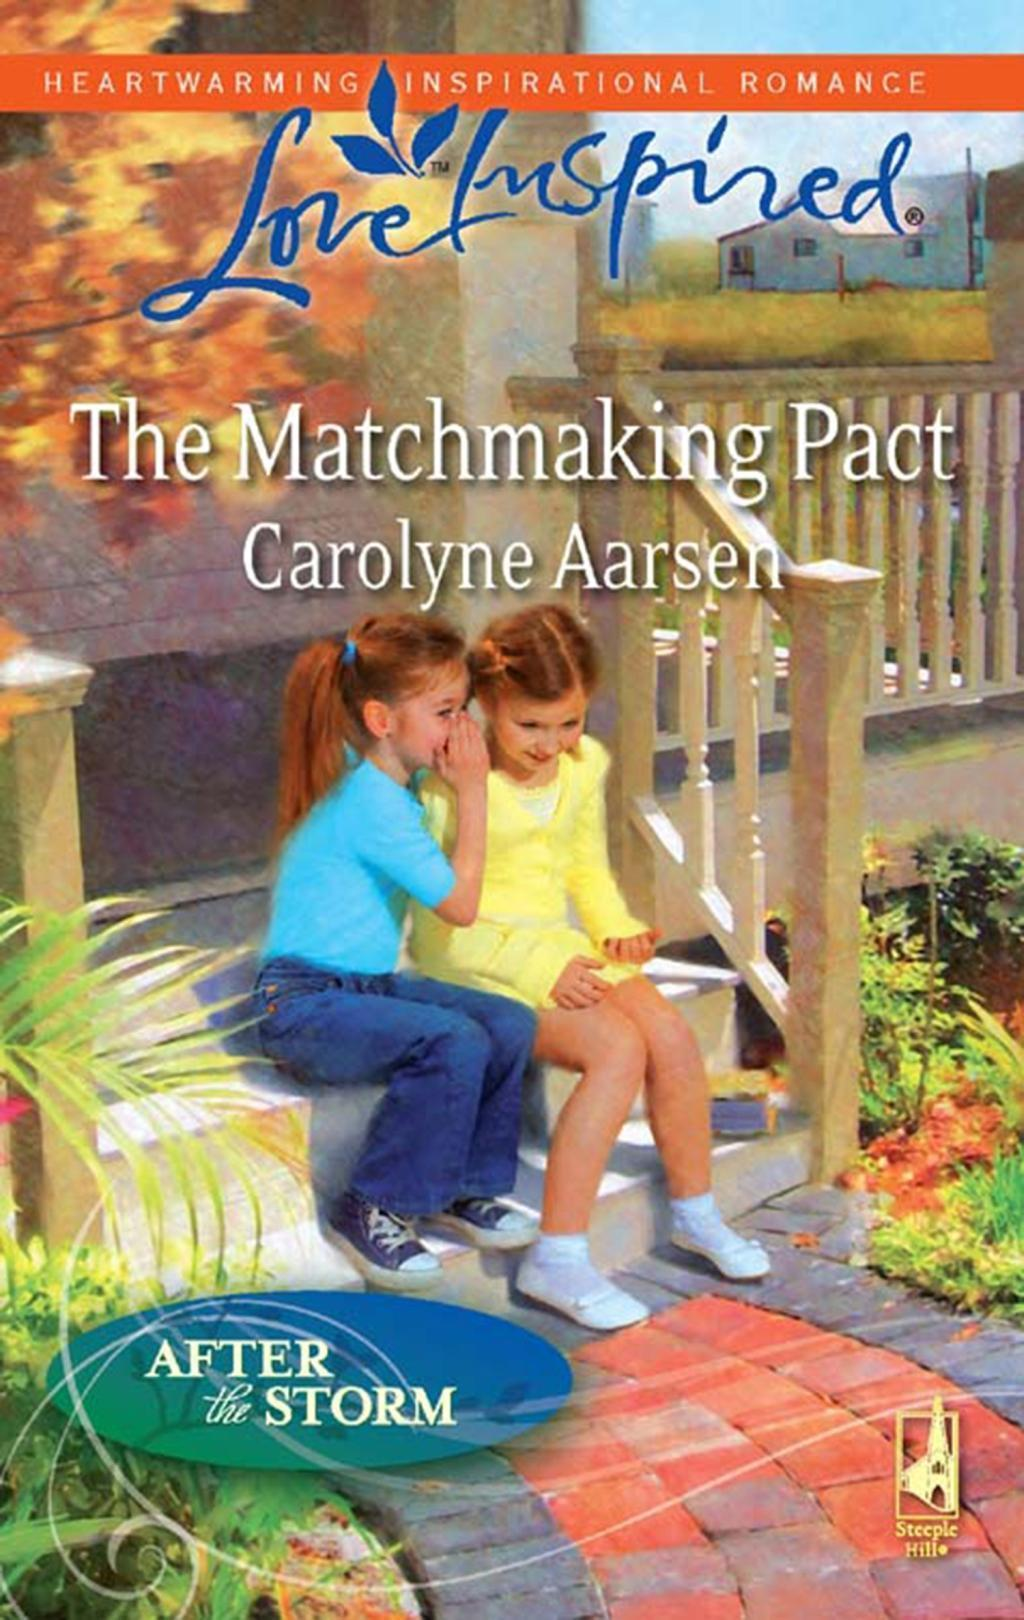 The Matchmaking Pact (Mills & Boon Love Inspired) (After the Storm, Book 5)